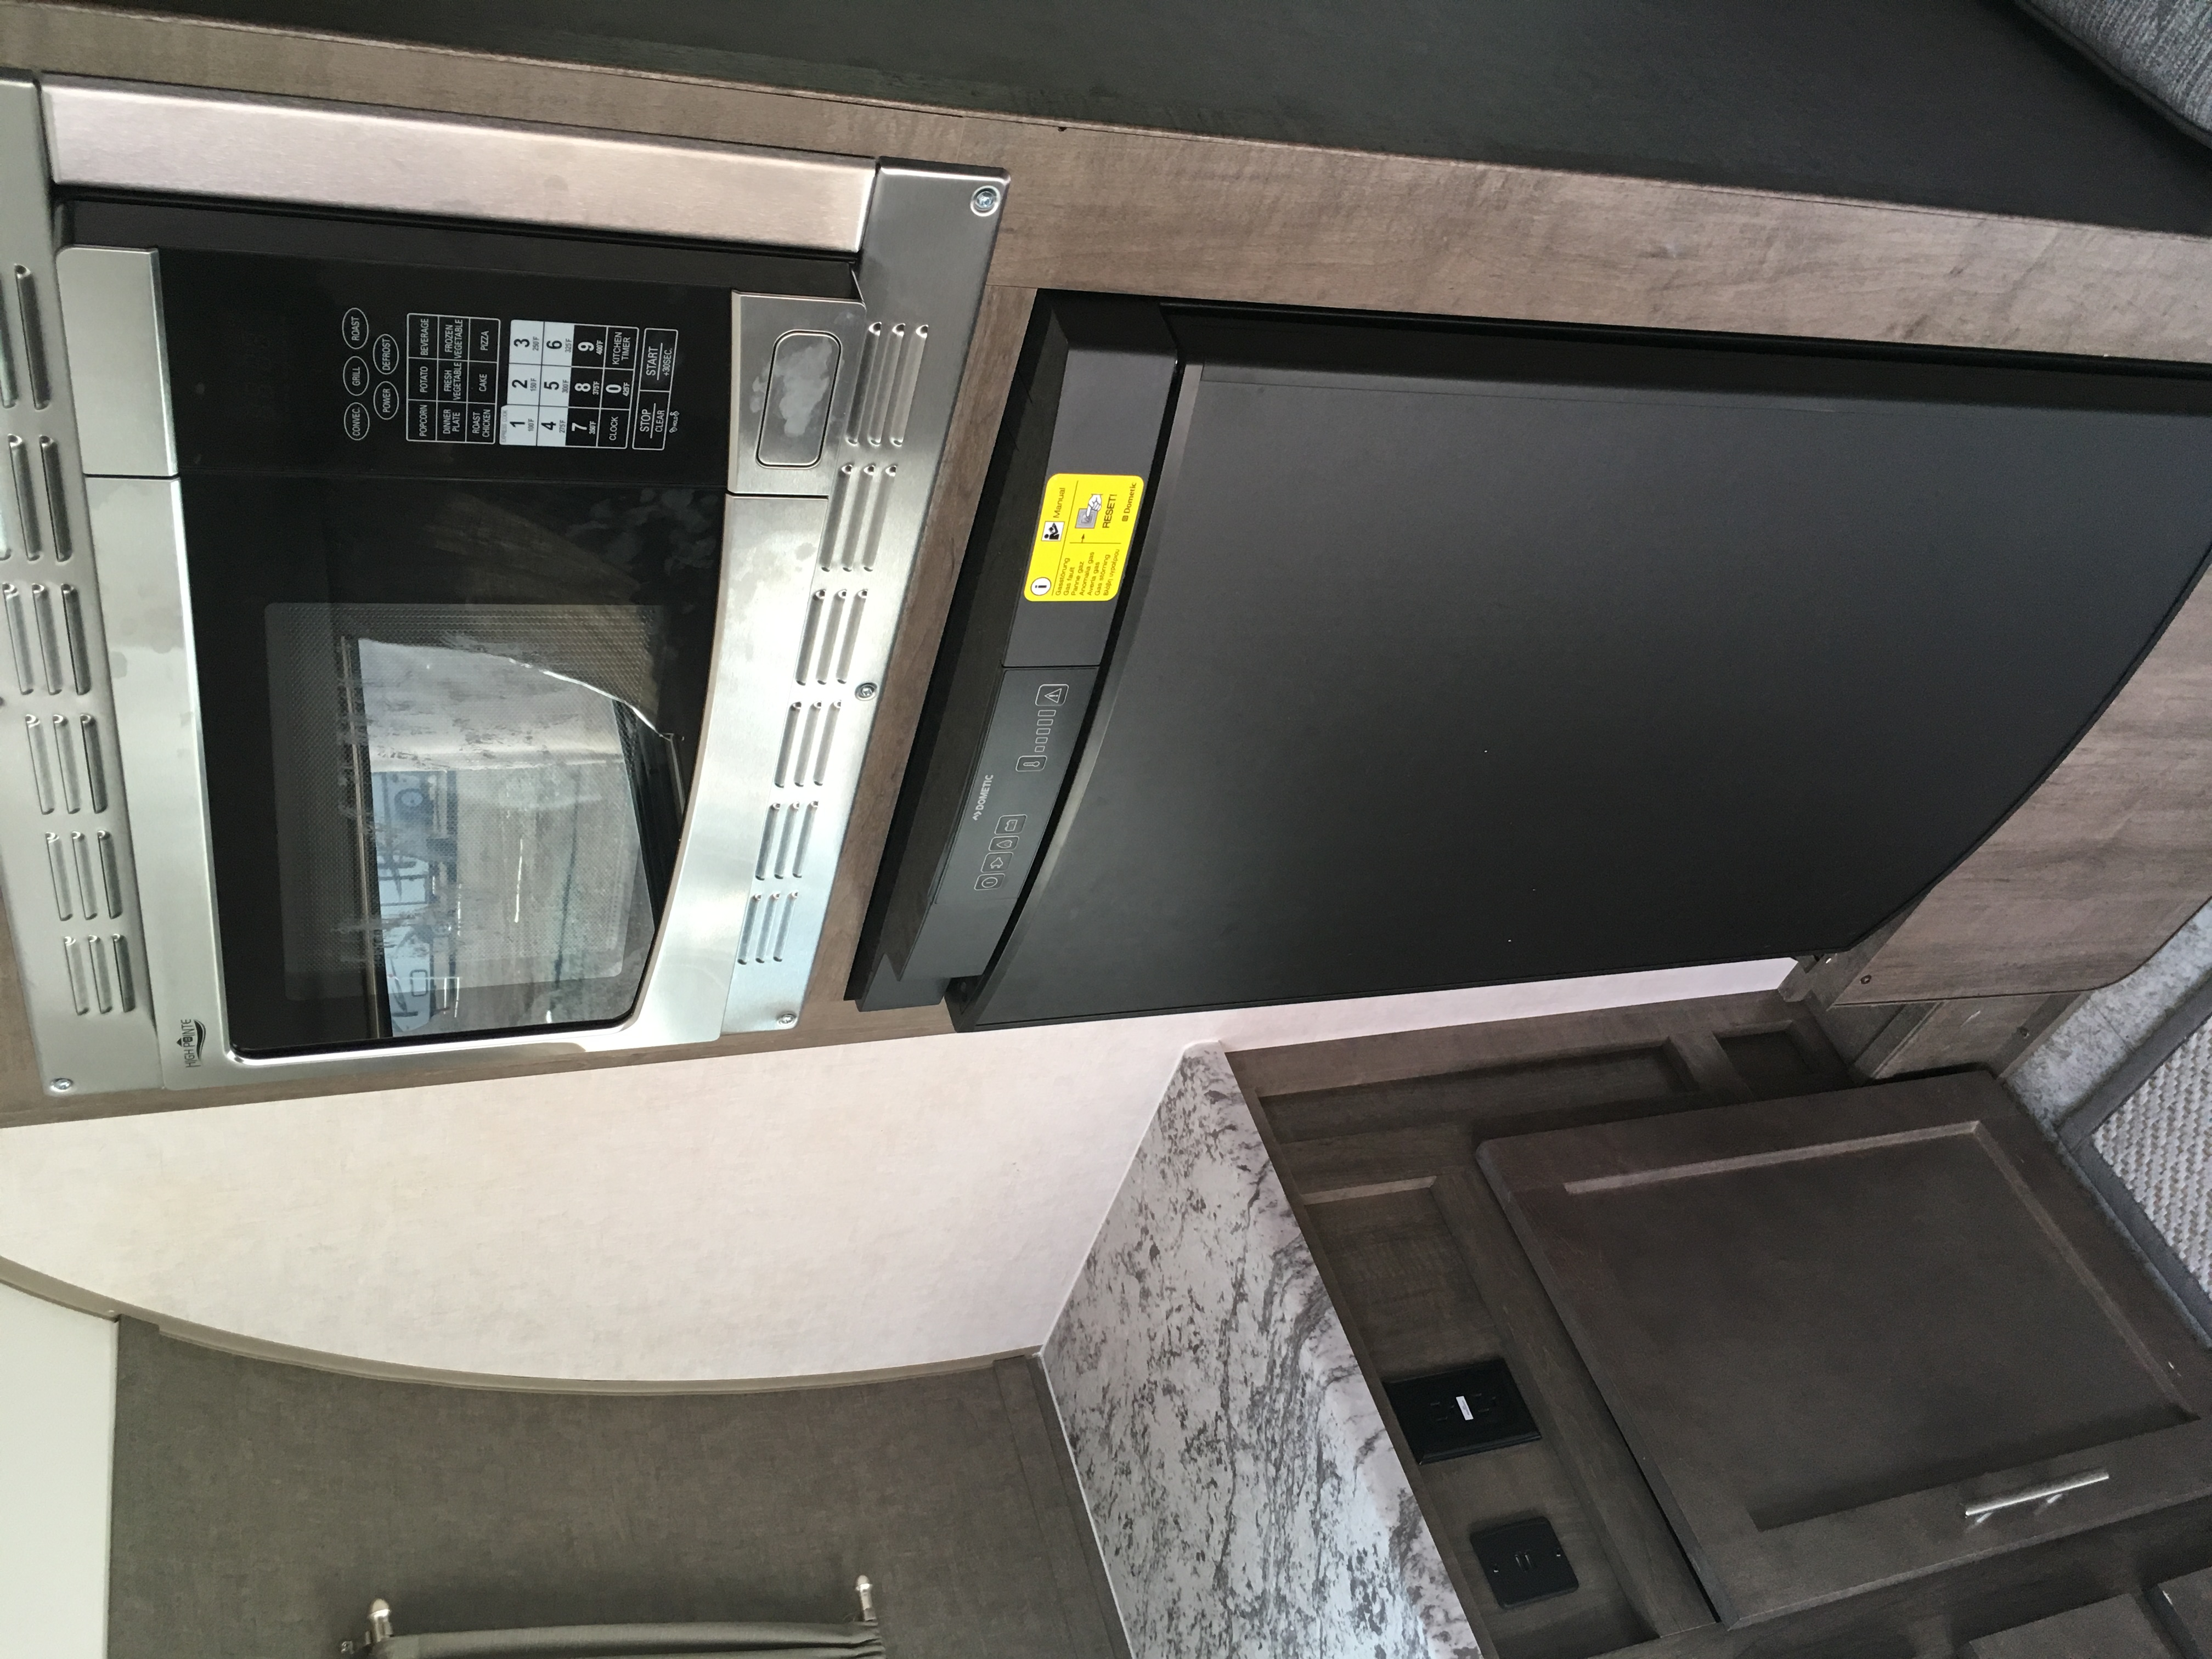 Convection microwave and fridge that runs off electric/propane/battery.